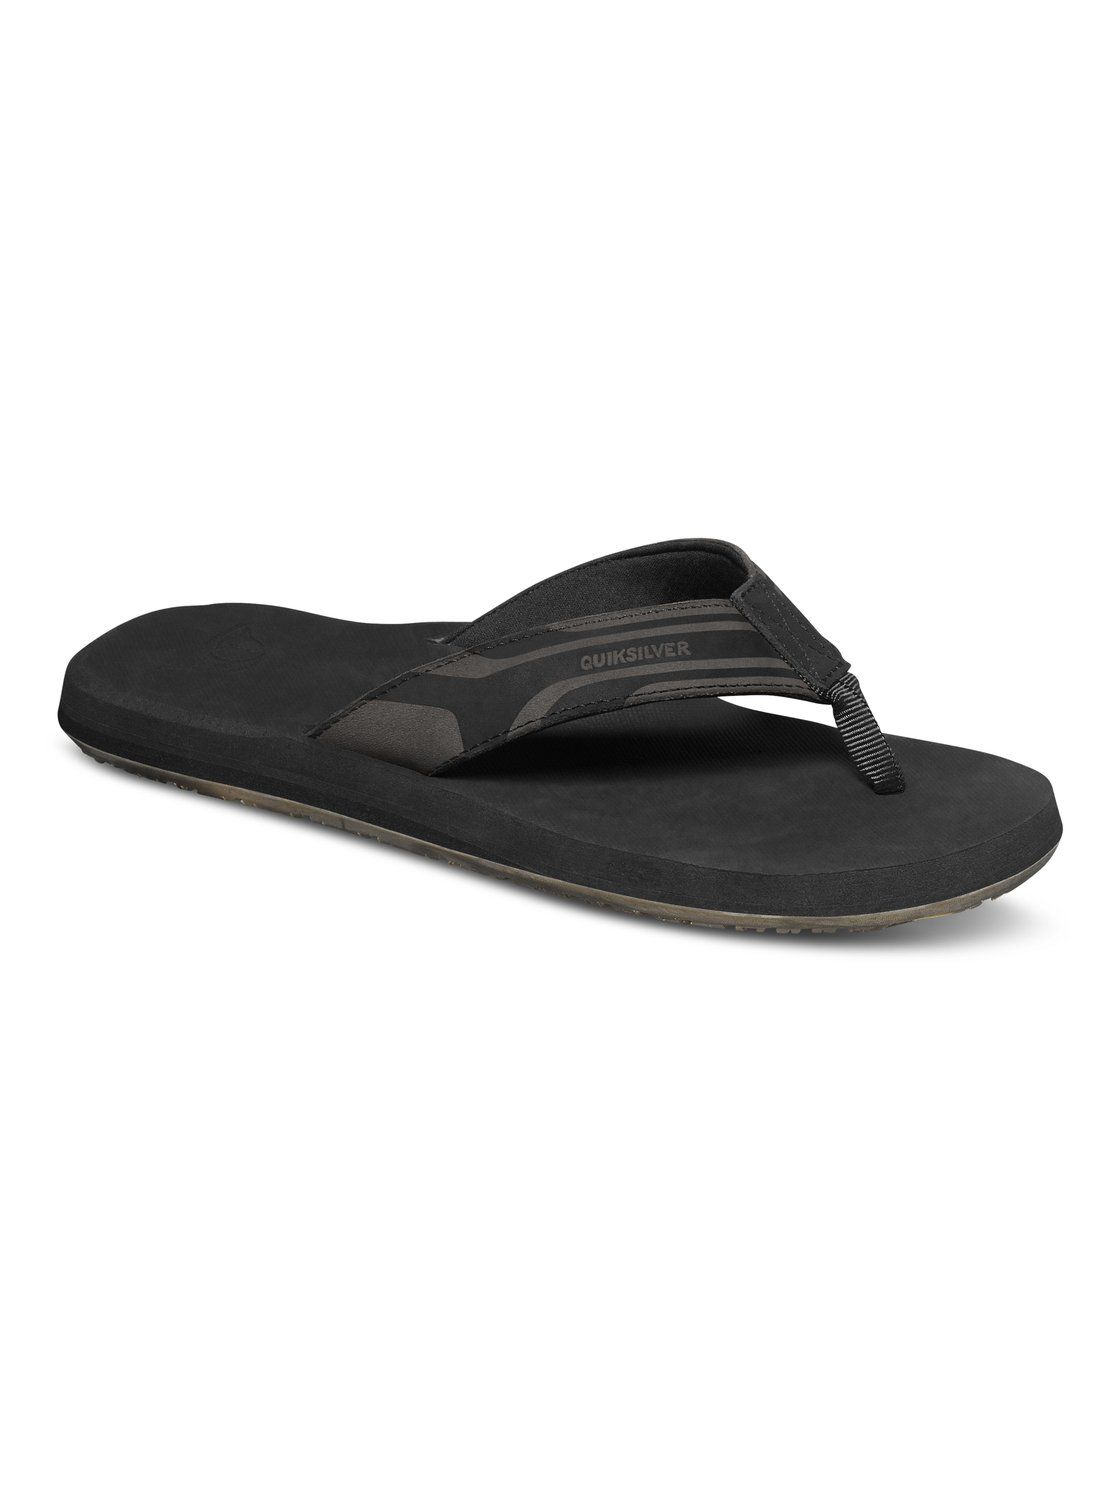 4a970b7047 Monkey Wrench - Sandals